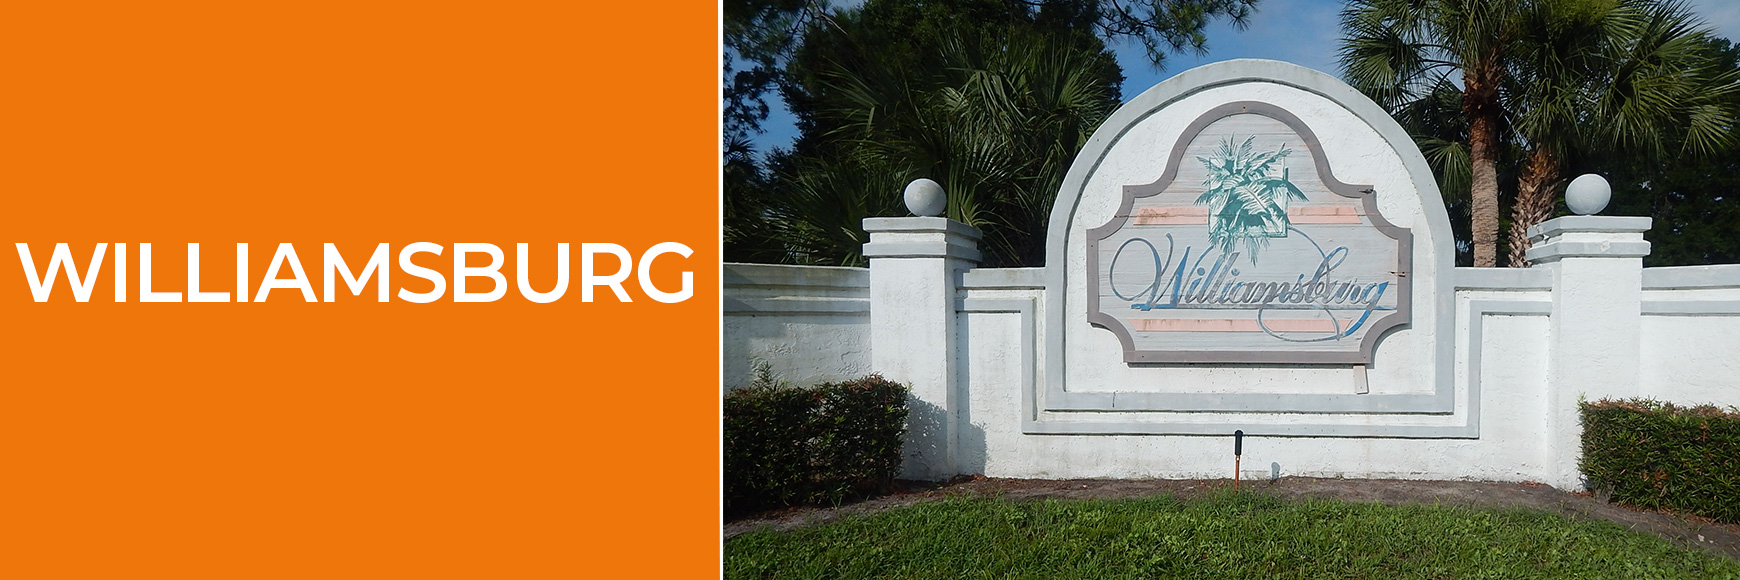 Williamsburg-Banner-Orlando Homes Sales